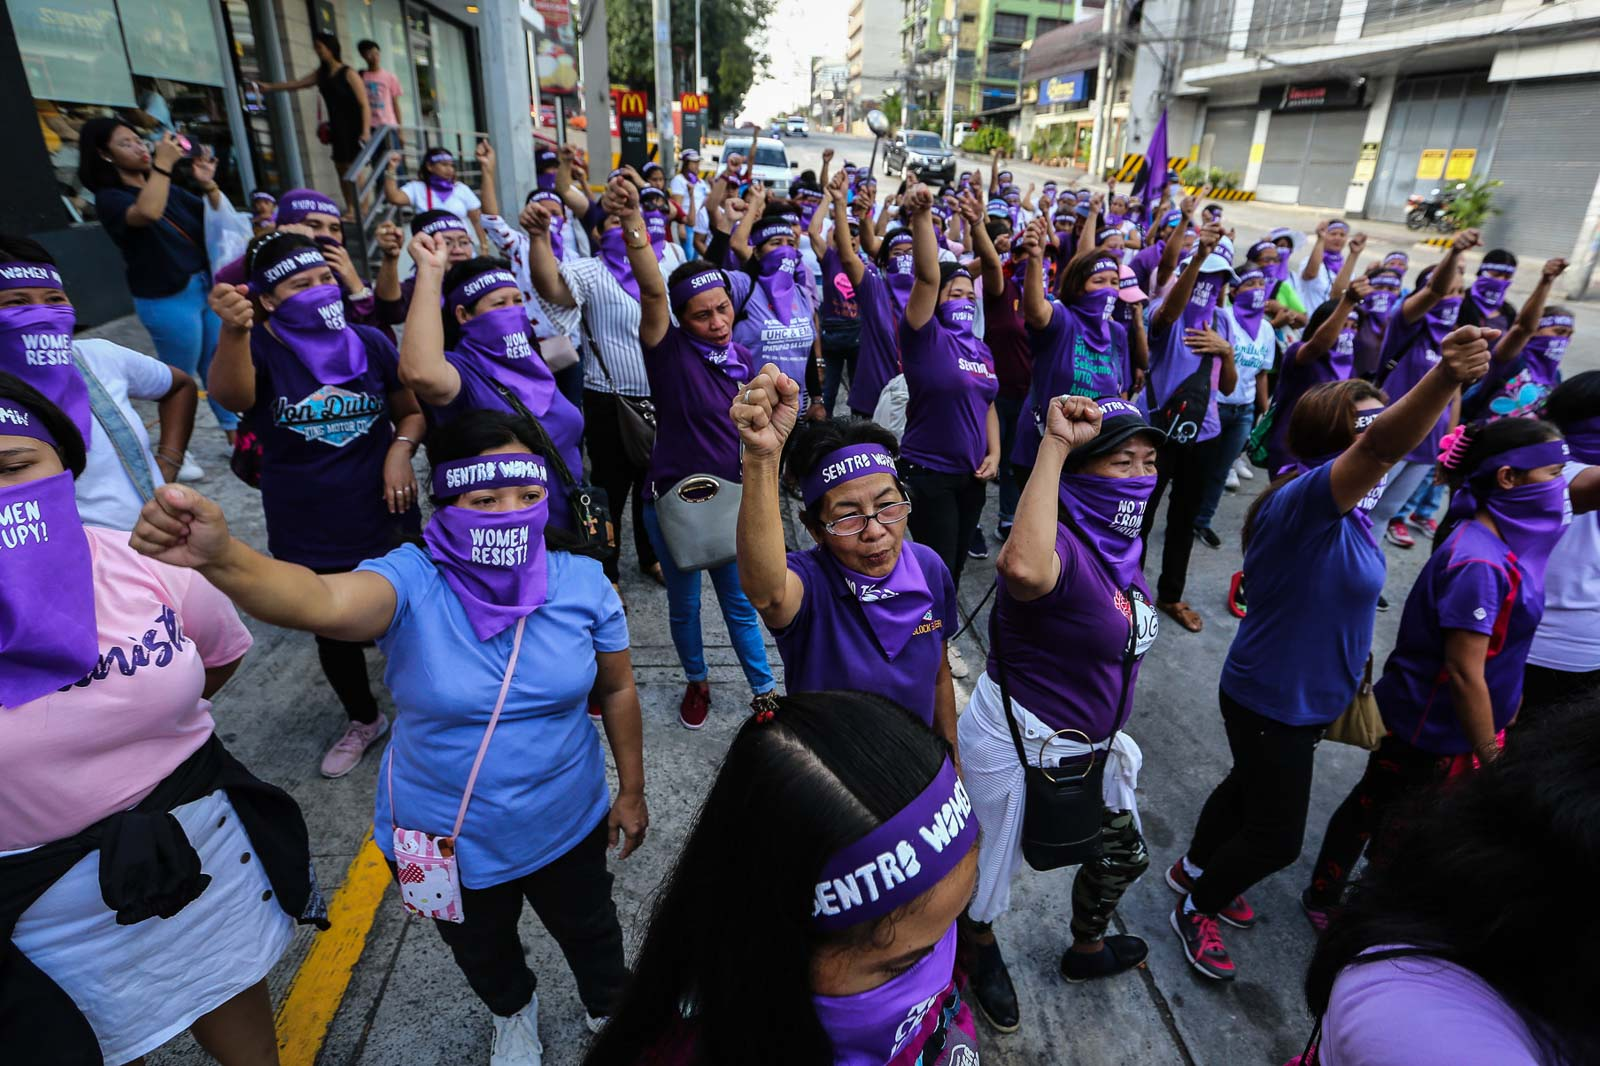 ASSERT HUMAN RIGHTS. World March of Women - Pilipinas during their celebration of the International Women's Day 2020 stand up for accountability for the massive killings and human rights violations propagated by the Duterte administration. Photo by Jire Carreon/Rappler